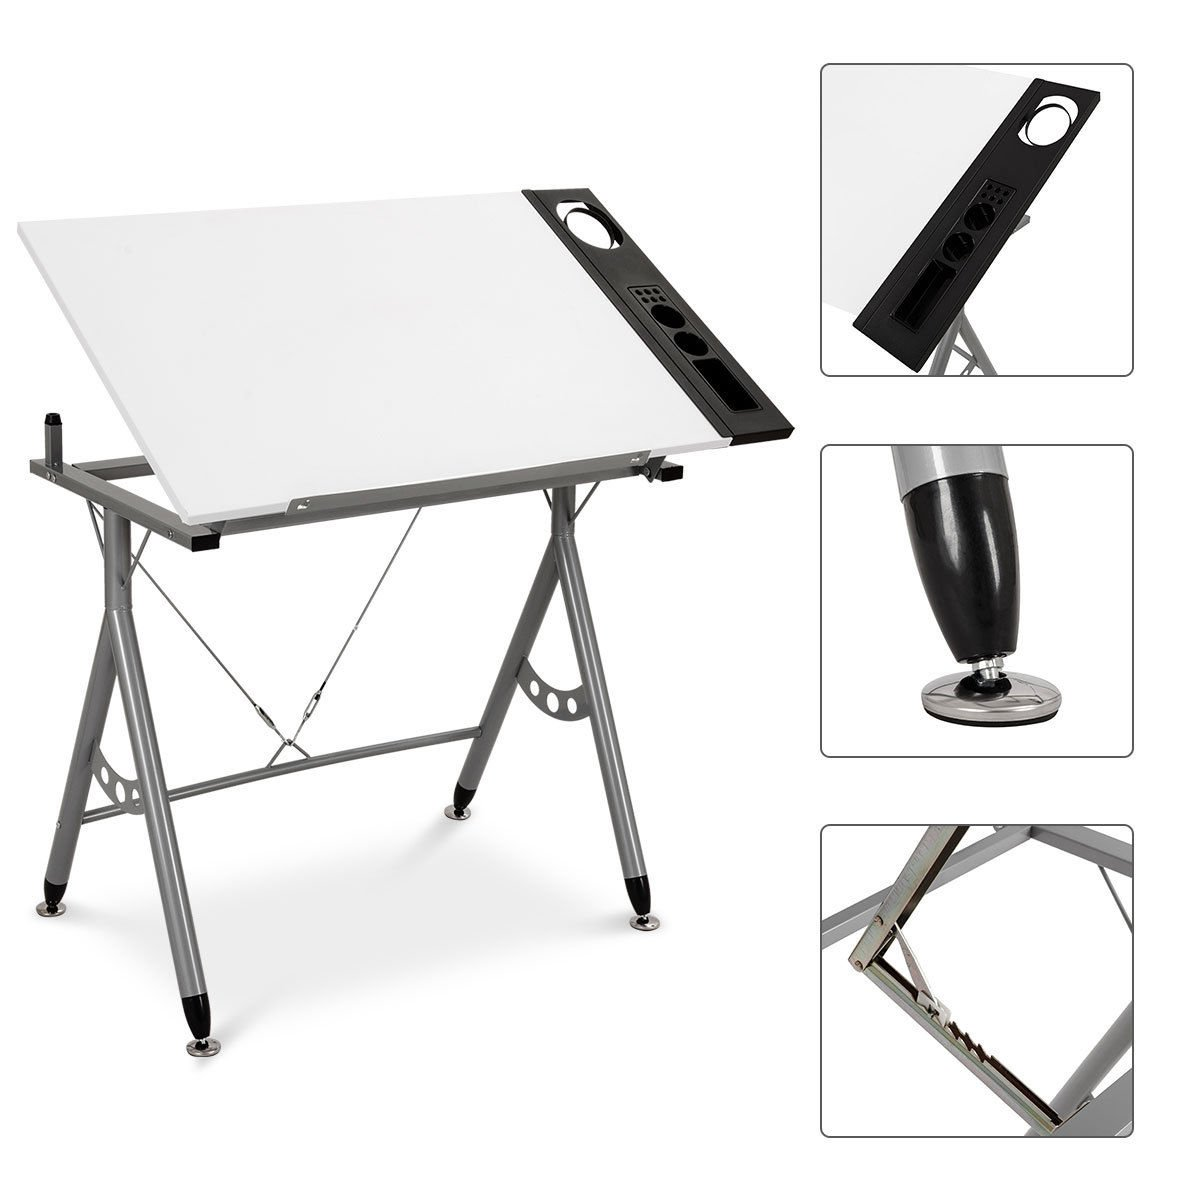 Safstar Adjustable Drafting Drawing Table Desk Tiltable Tabletop for Reading Studying Writing Art Craft Work Station with Side Tray (White)